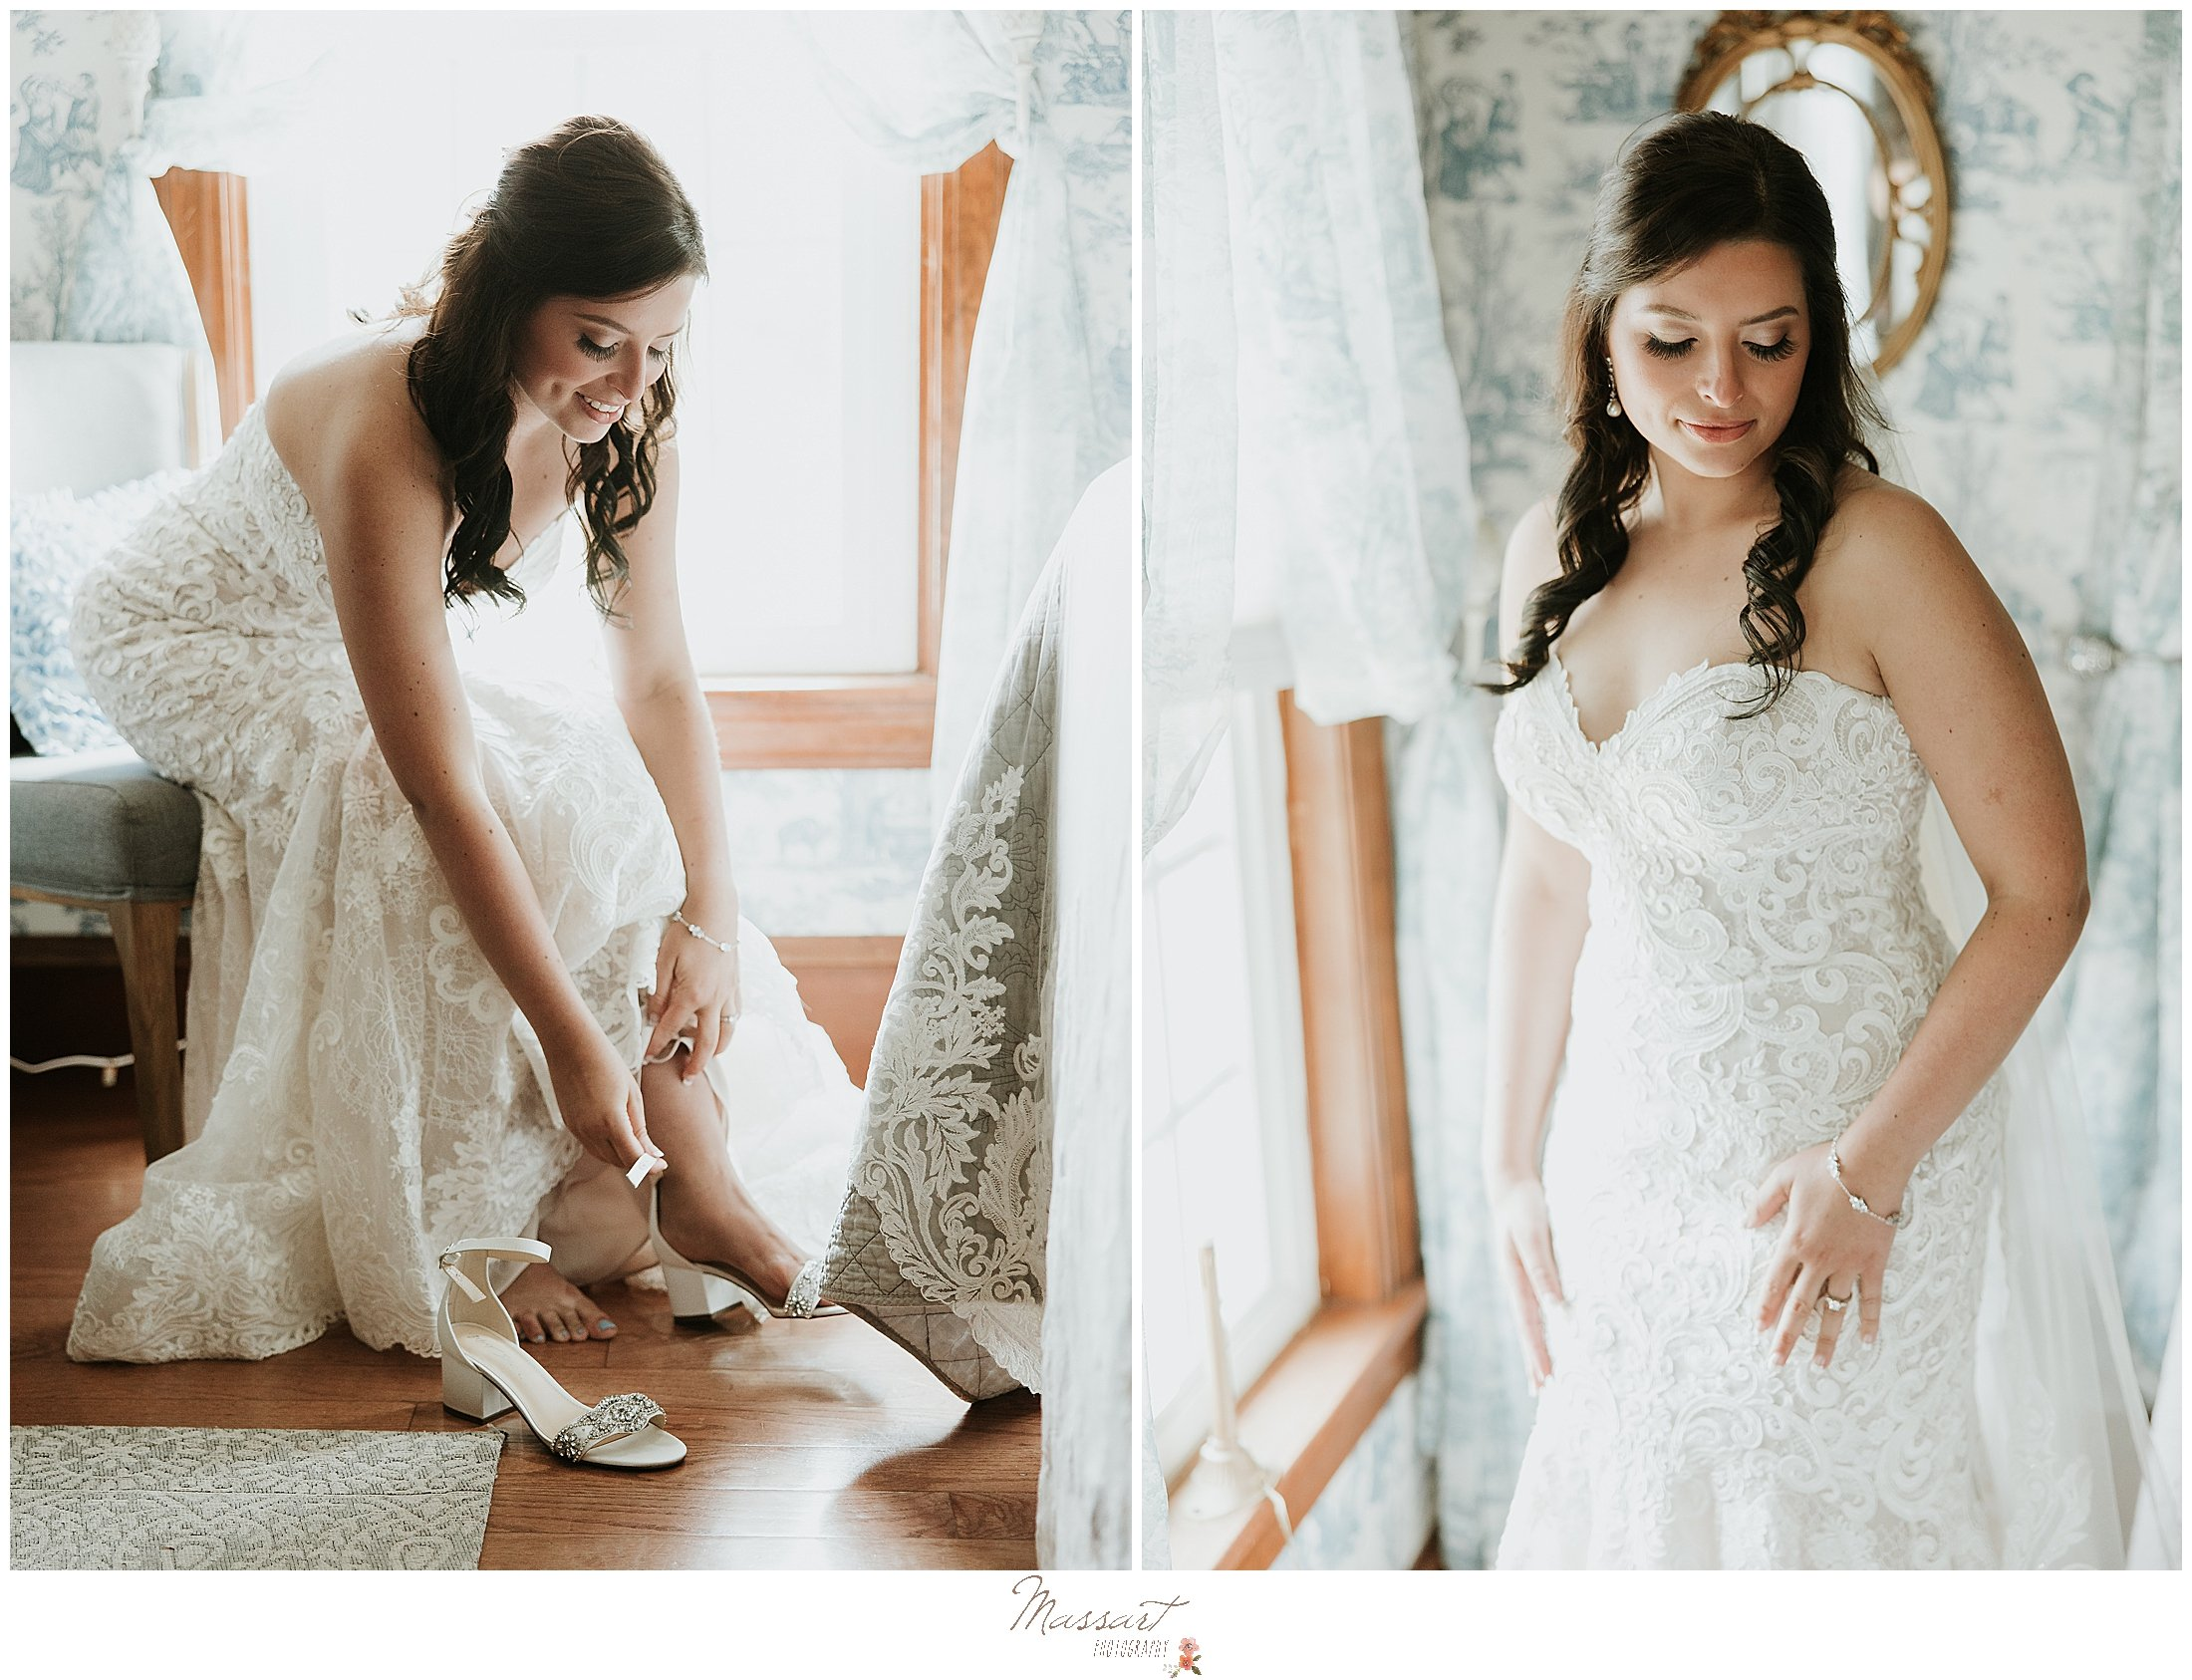 Massart Photographers from Rhode Island capture a bride getting ready pictures